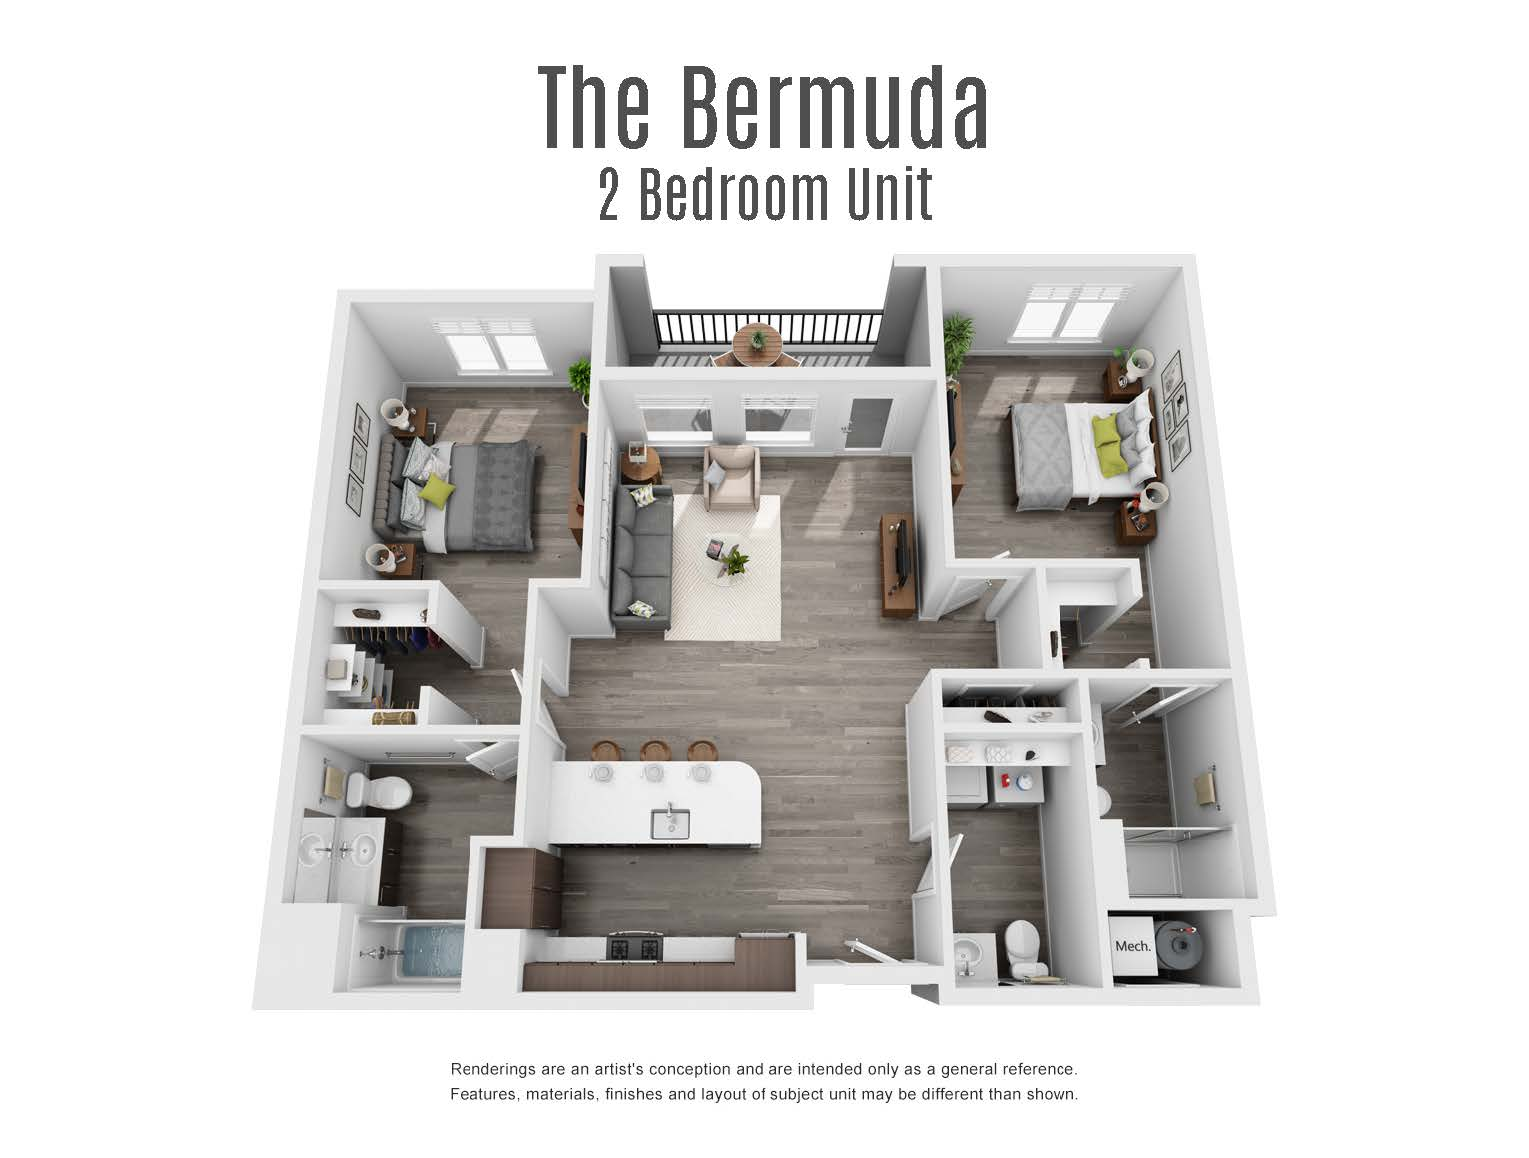 The Bermuda